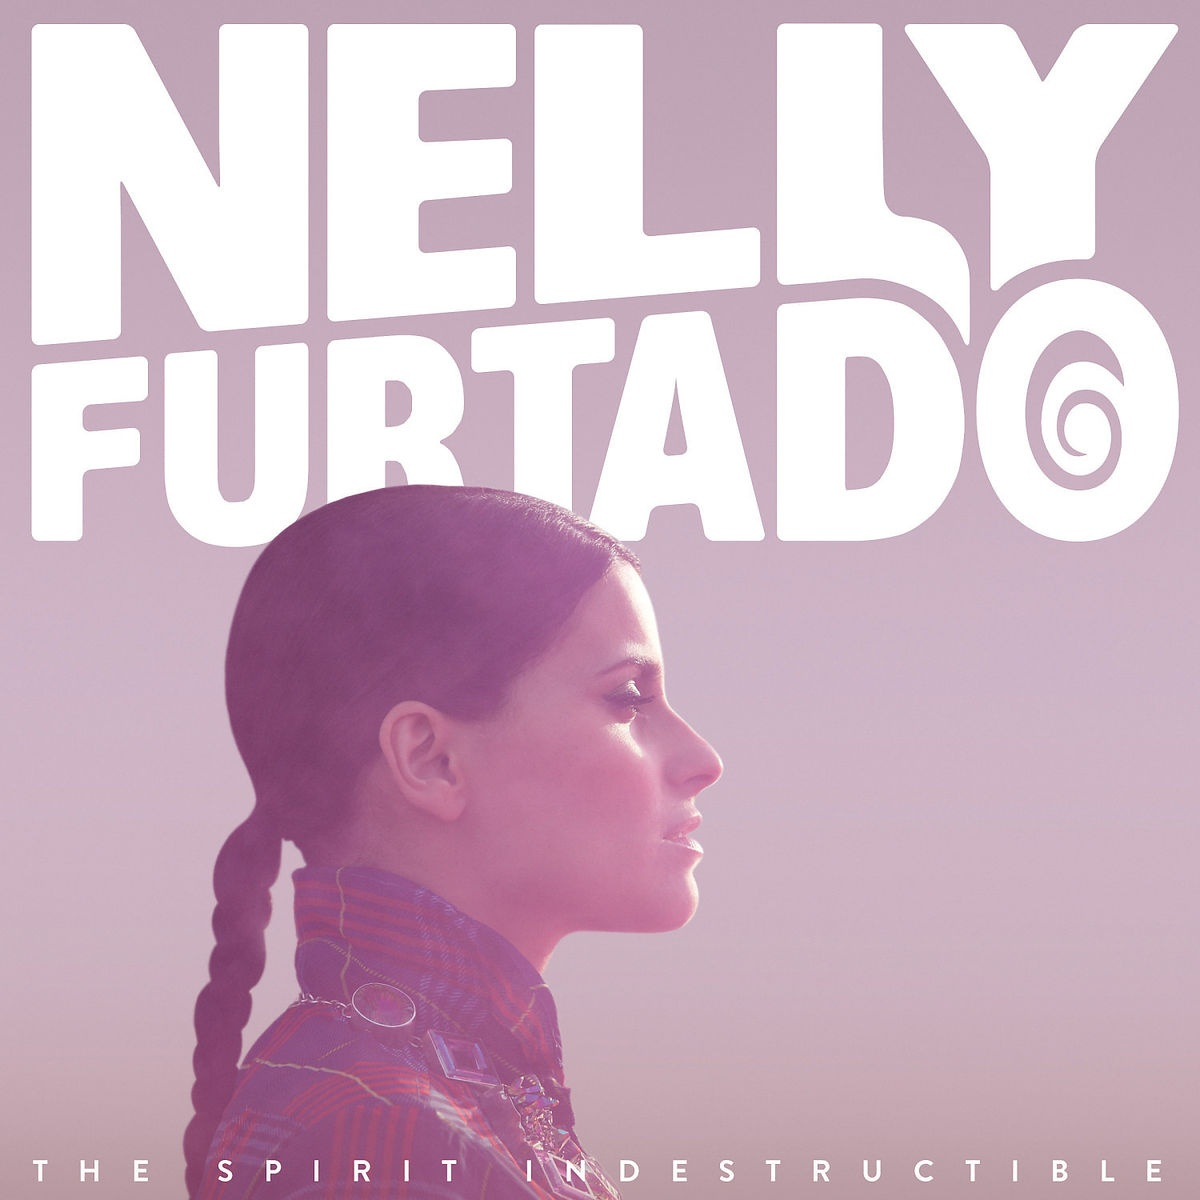 http://1.bp.blogspot.com/-DntCWpGdugk/UFWq9AKFcuI/AAAAAAAAHnY/5SQovNarY_Q/s1600/nelly+furtado+the+spirit+indestructible.jpg